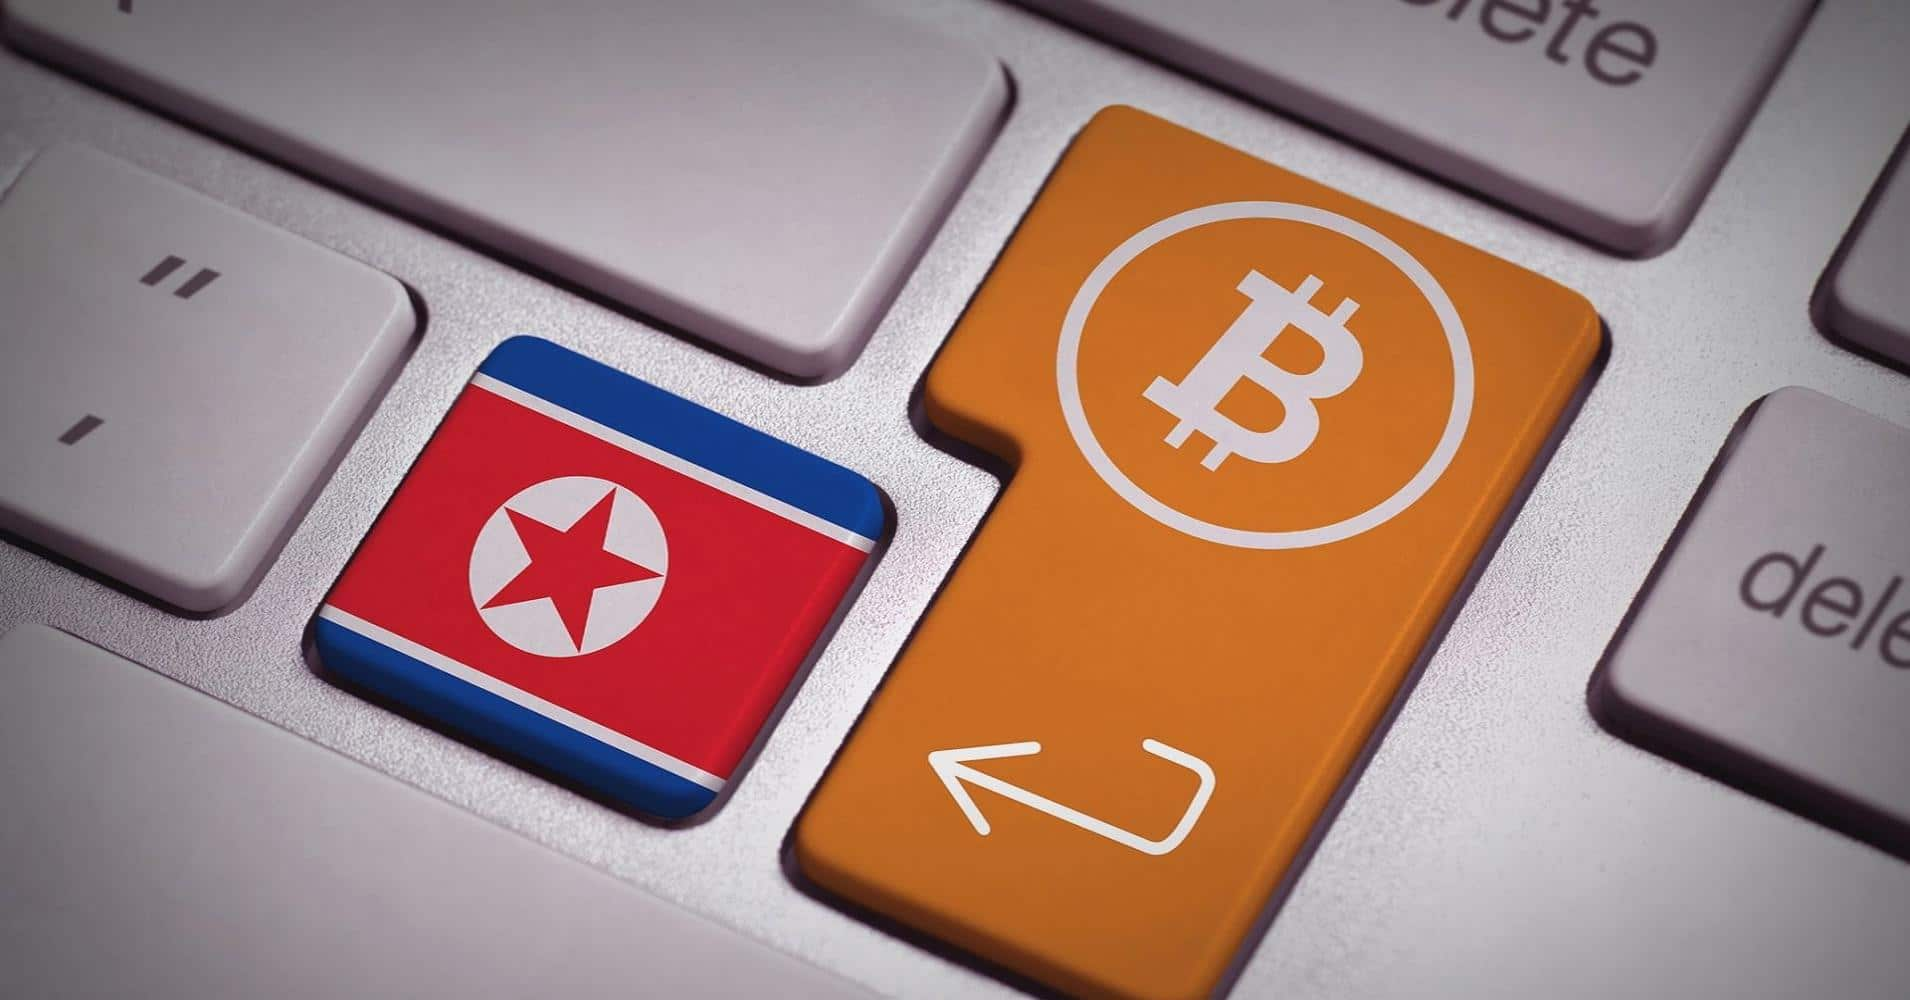 A Report Claims North Korea Could Be Trying To Embrace Cryptocurrency